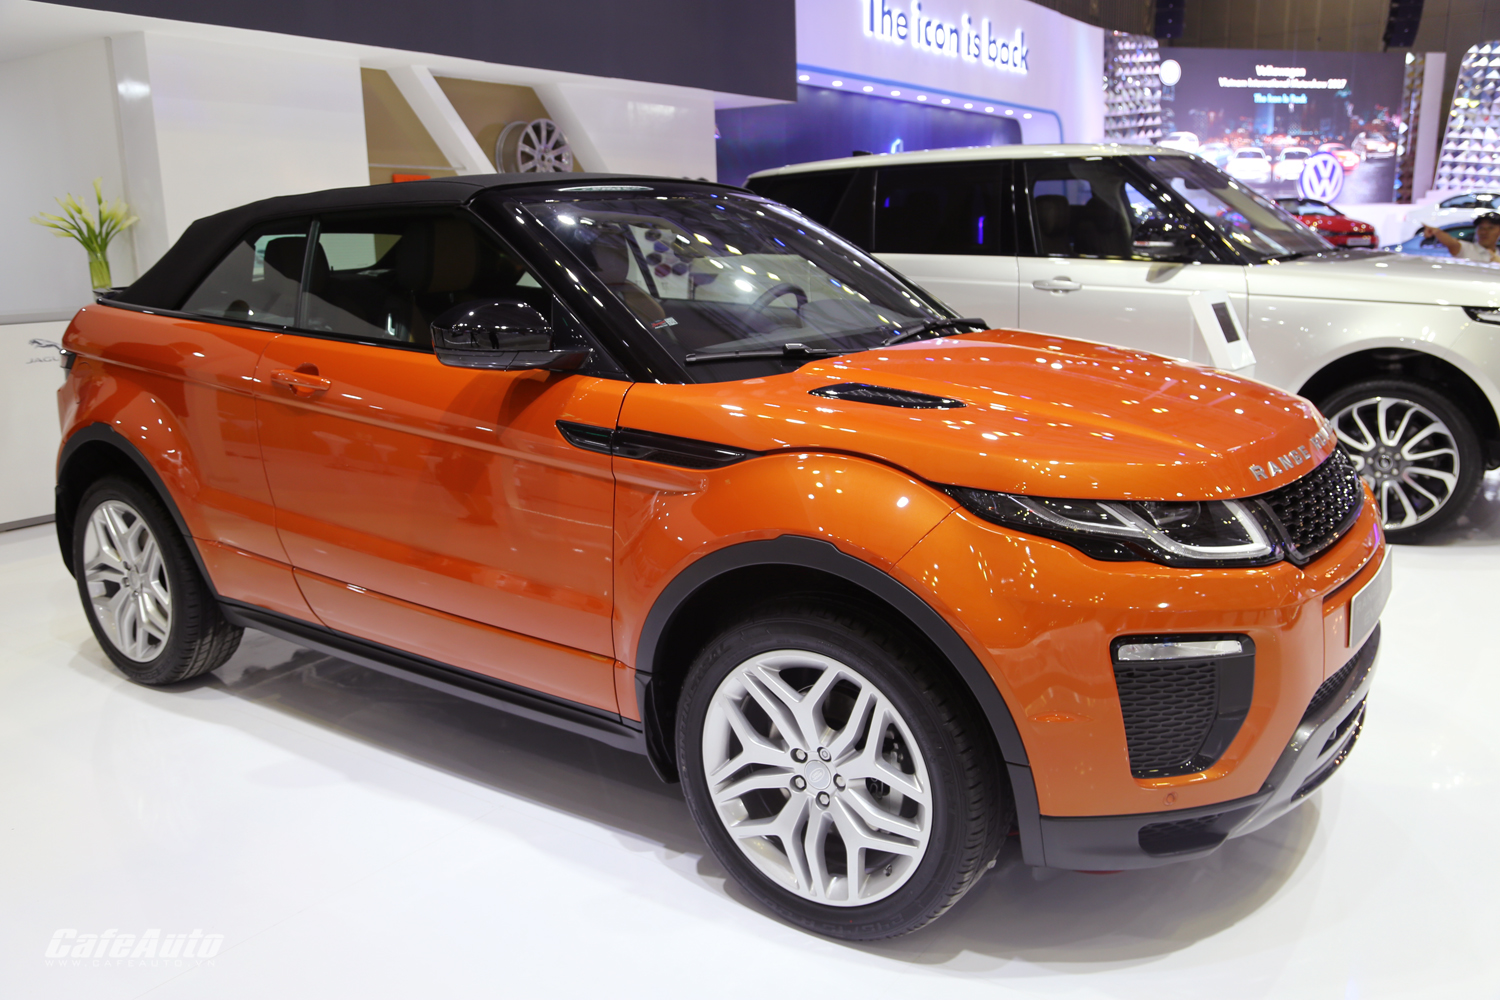 c n c nh range rover evoque convertible m i ra m t cafeauto vn. Black Bedroom Furniture Sets. Home Design Ideas